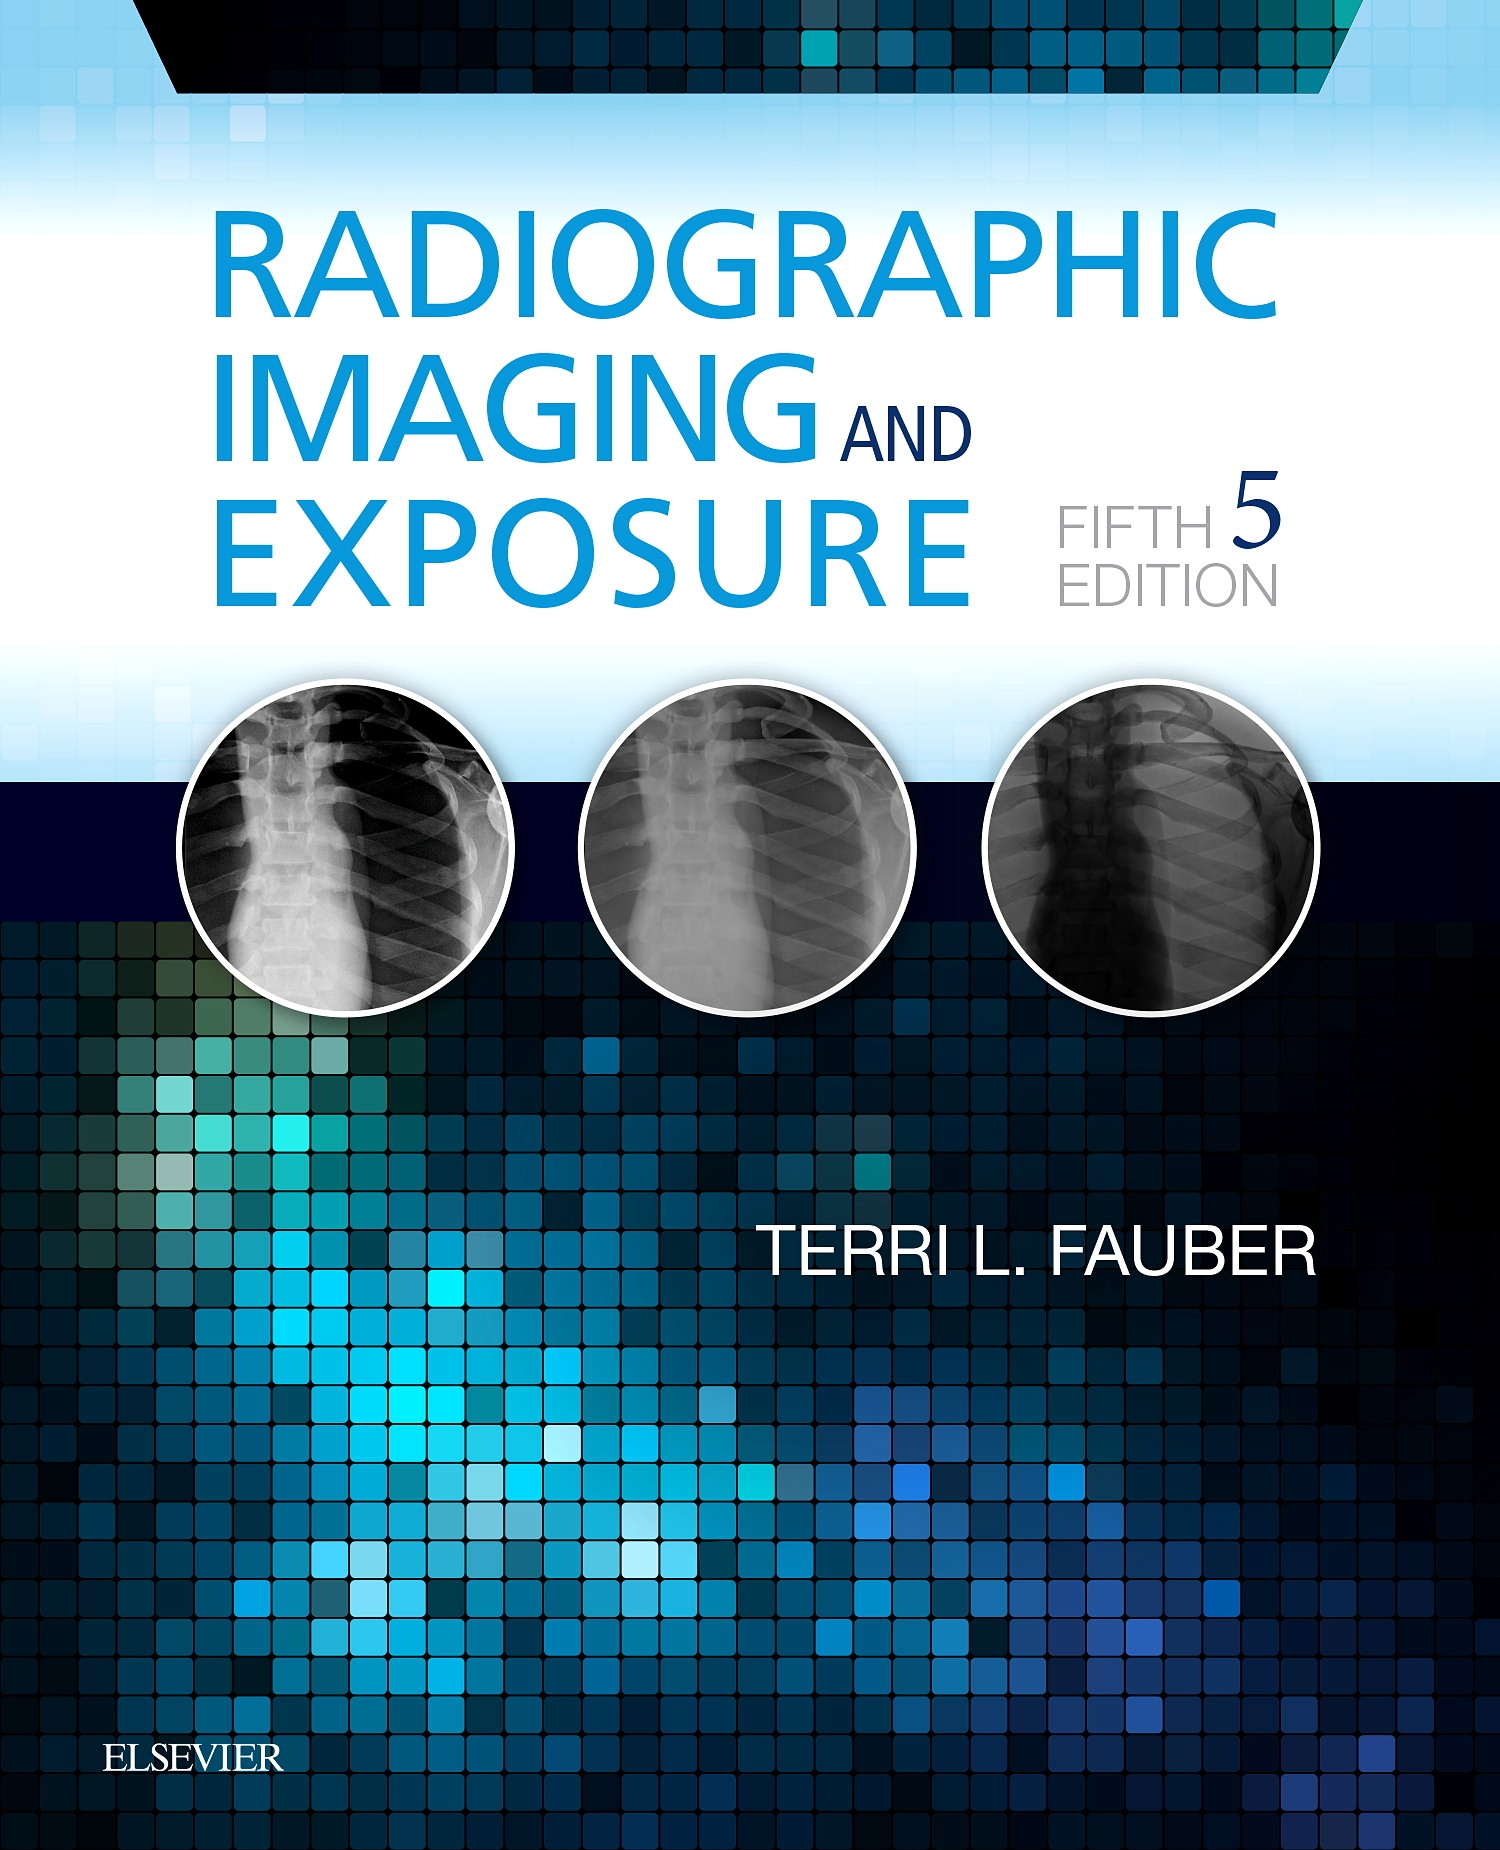 Evolve Resources for Radiographic Imaging and Exposure, 5th Edition